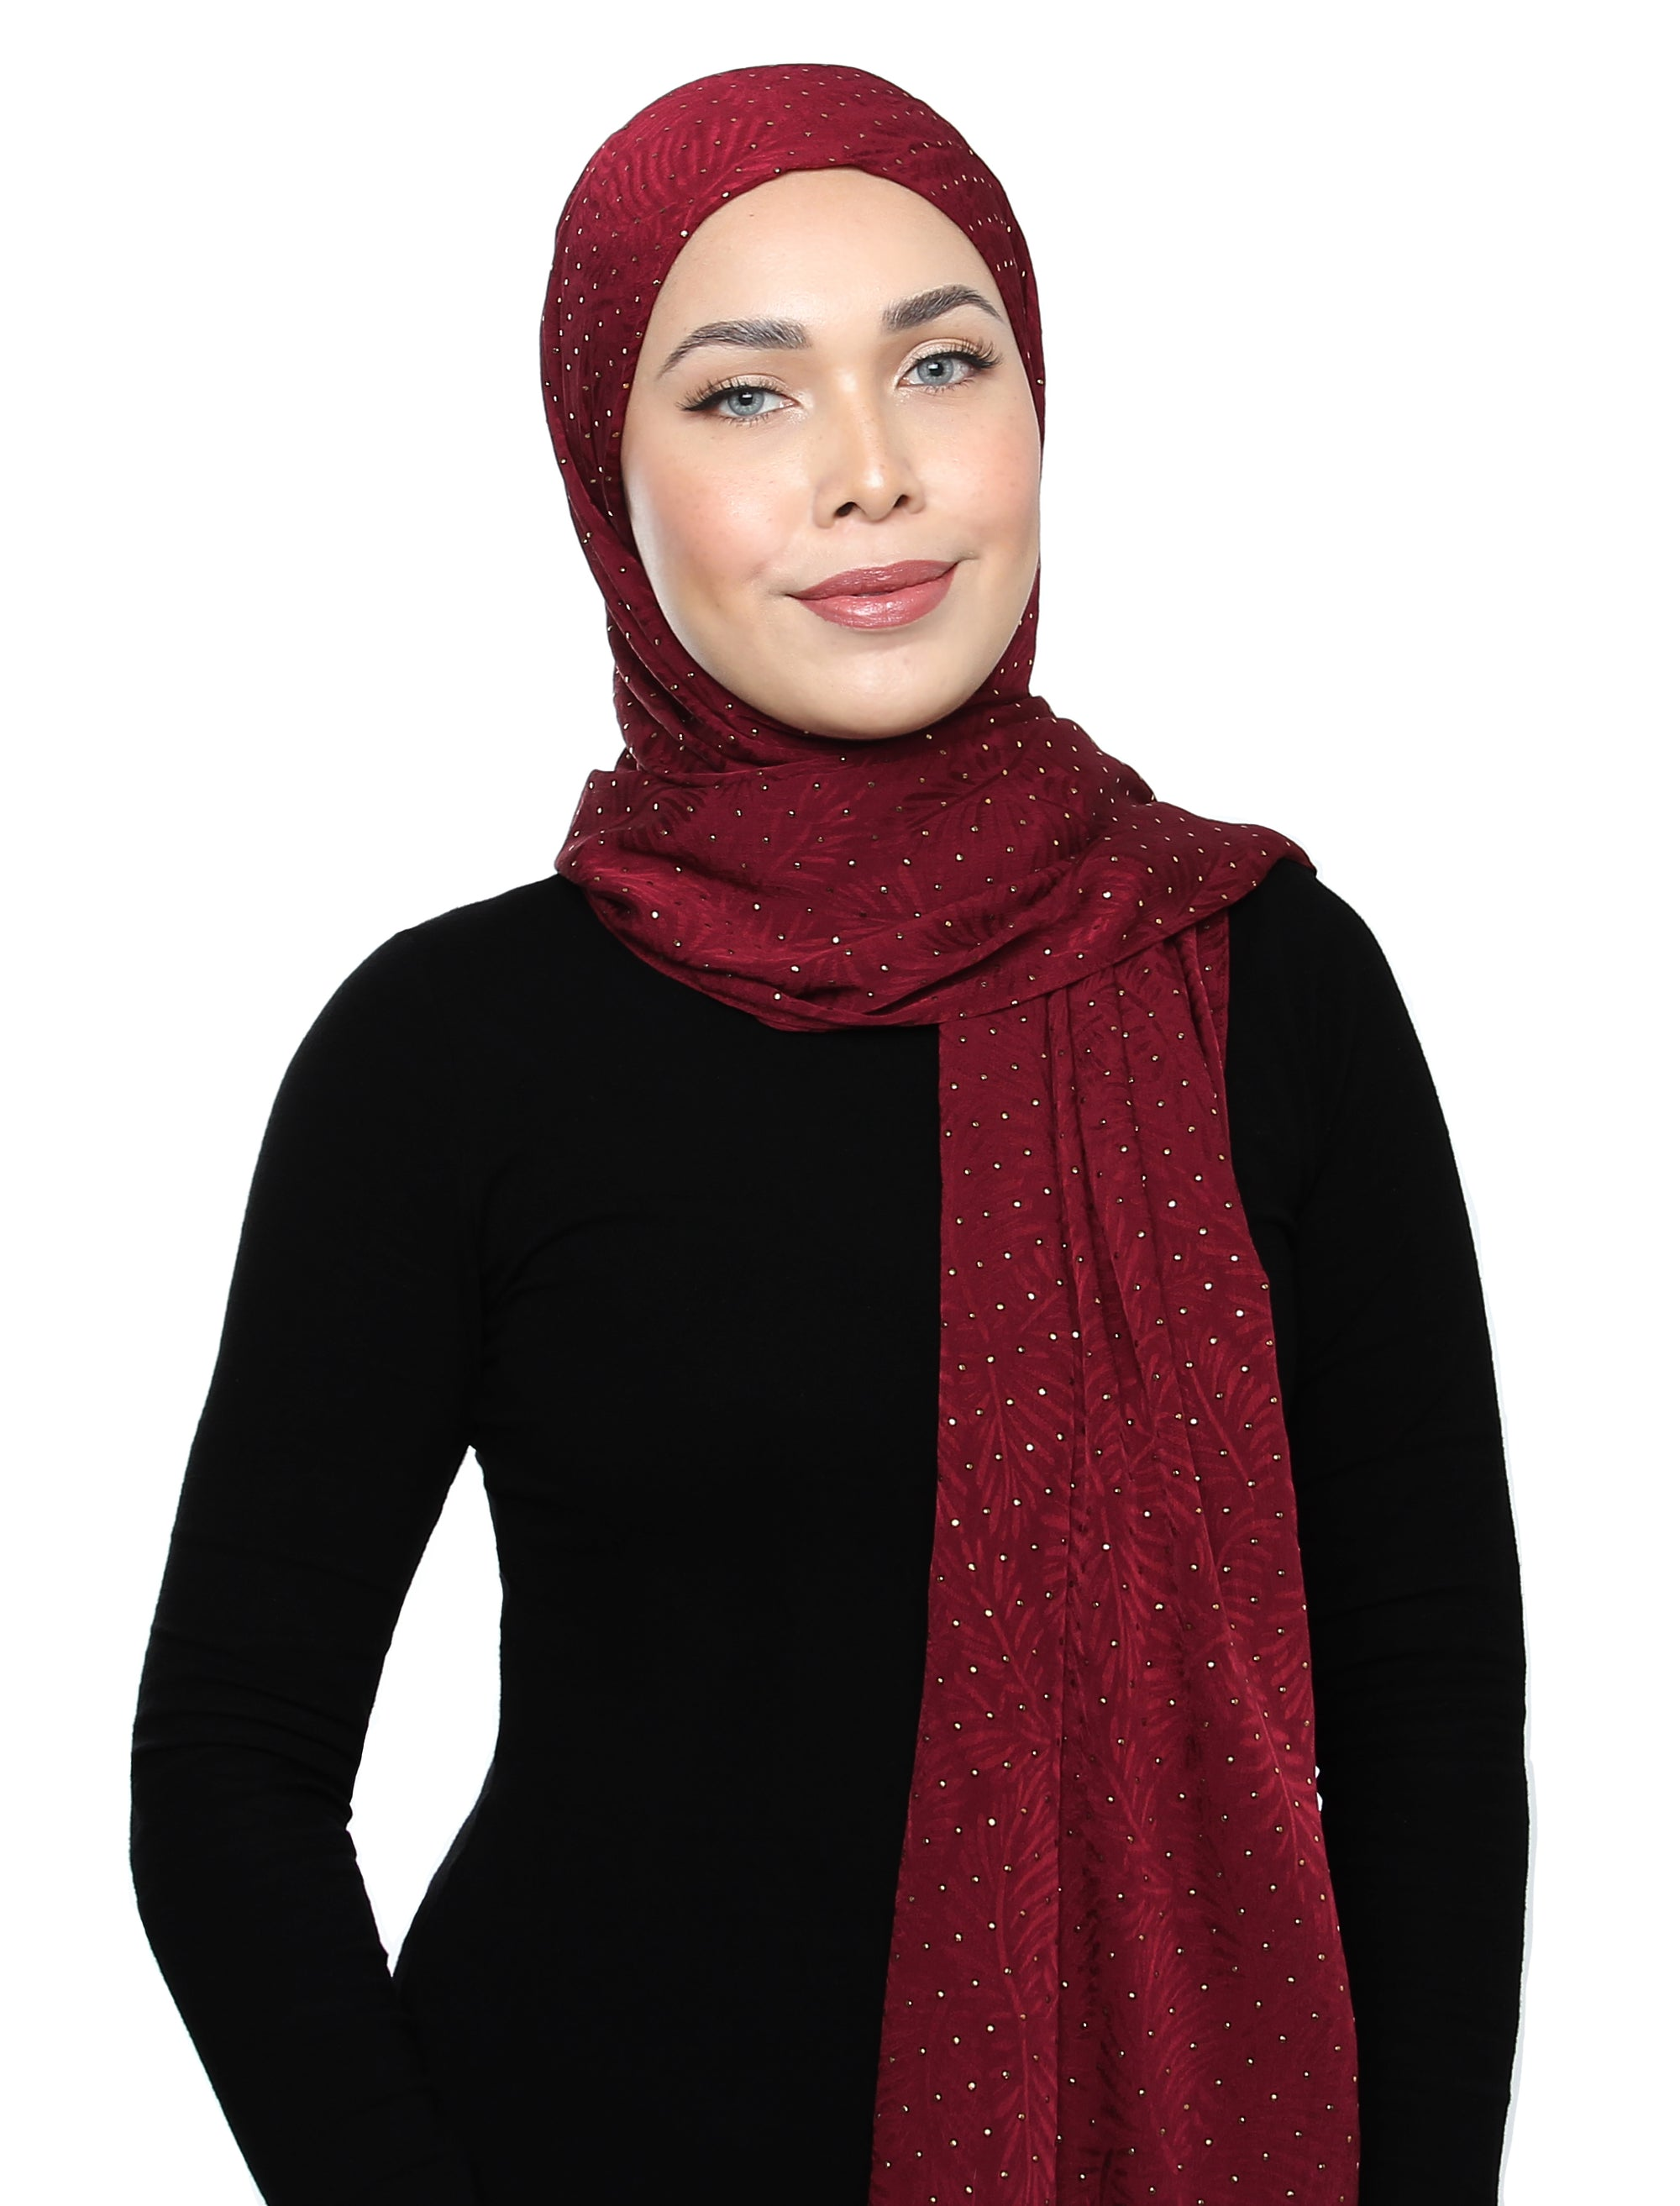 Lux Square Textured Gold Foil Satin Shawl - Burgundy